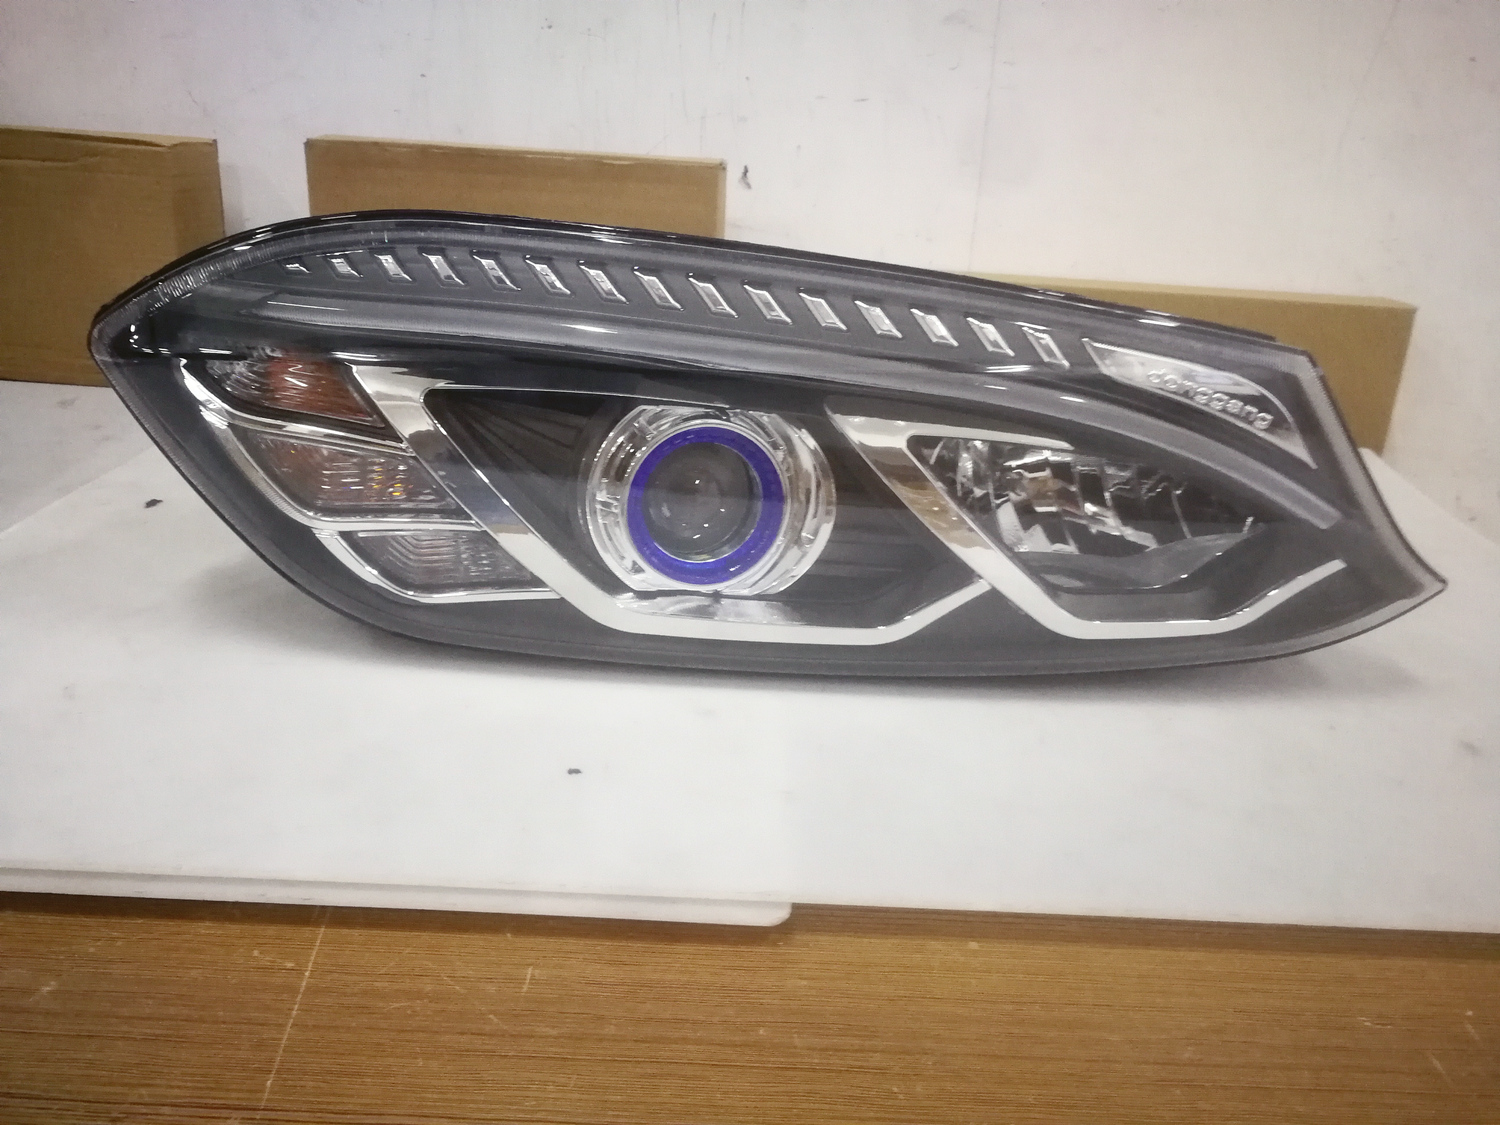 HC-B-1550-1 KINGLONG BUS LED HEAD LAMP WITH LED FIBER, FRONT HEADLIGHT WITH PROTECTOR